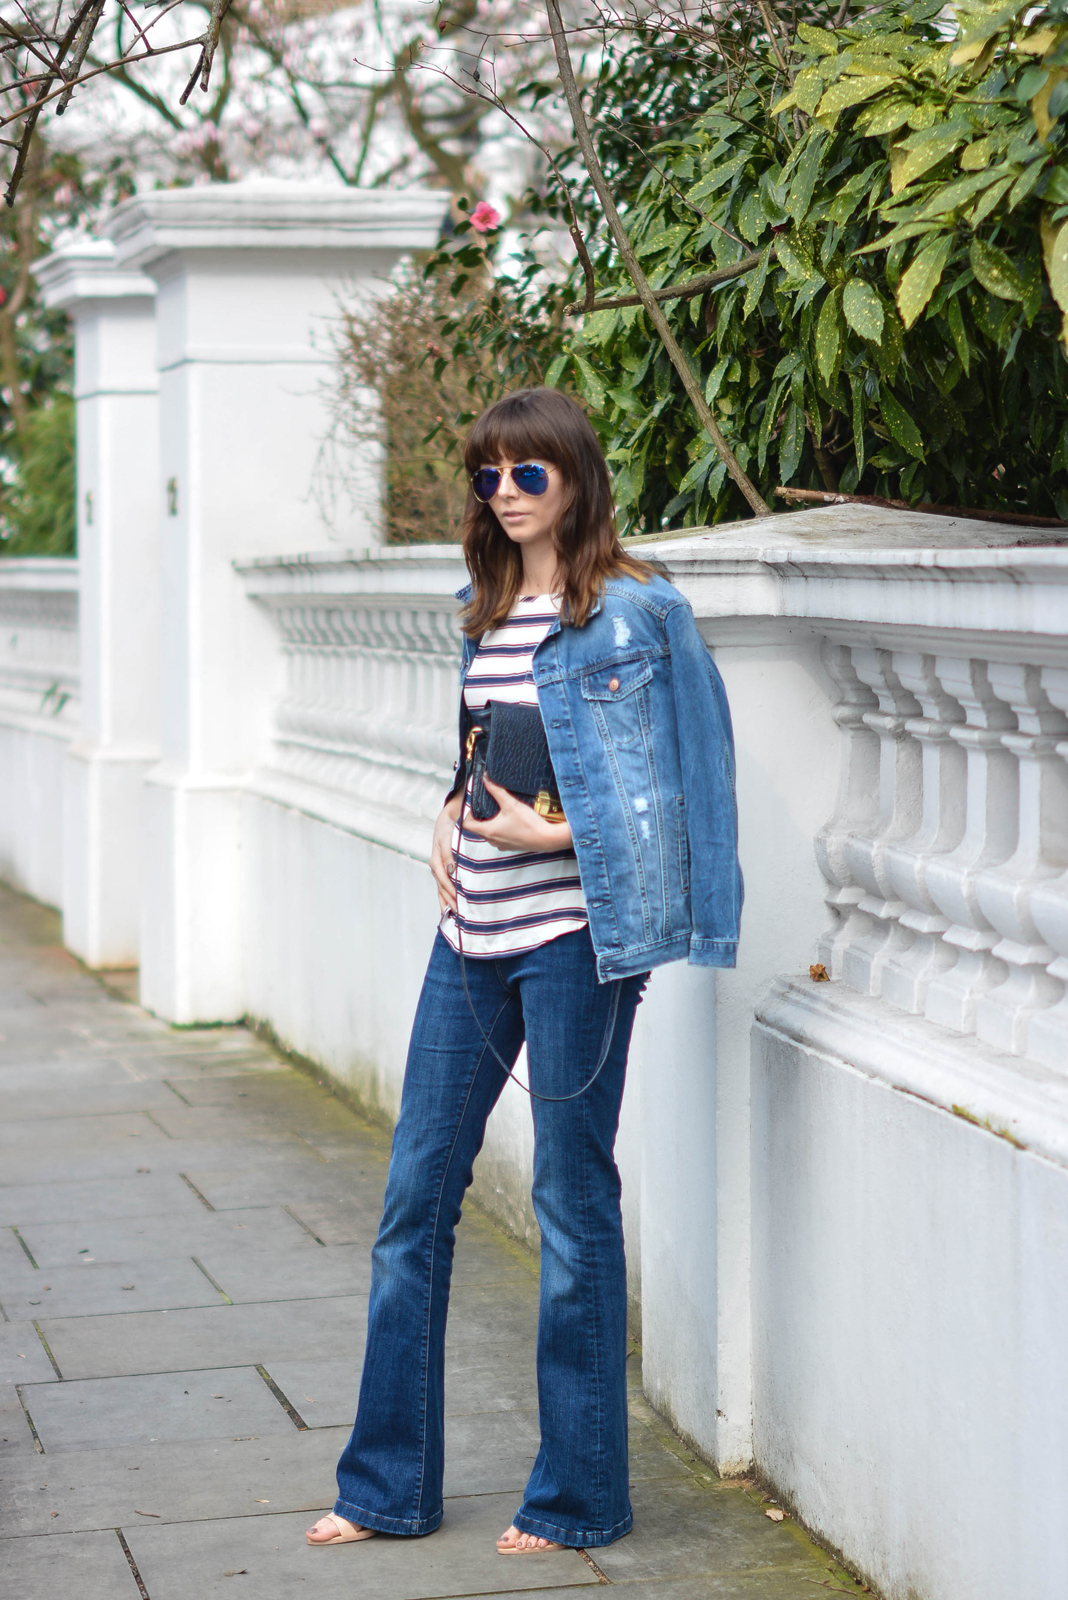 EJSTYLE - Emma Hill, Double denim, Spring outfit, flare jeans, stripe H&M top, H&M denim jacket, navy bag, nude sandals, OOTD